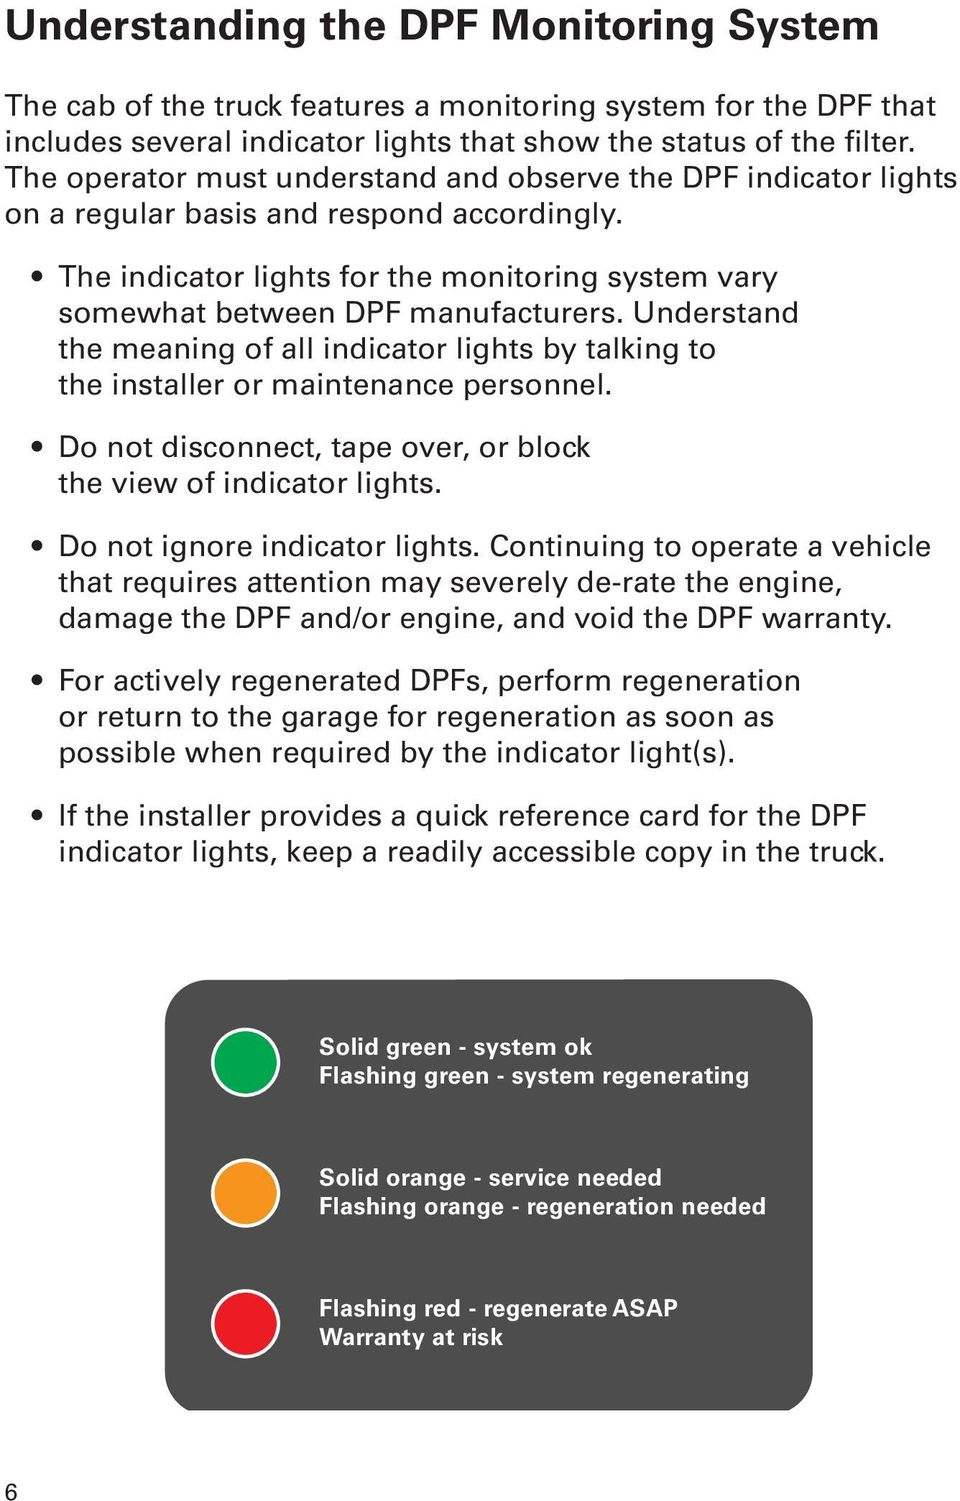 Understand the meaning of all indicator lights by talking to the installer or maintenance personnel. Do not disconnect, tape over, or block the view of indicator lights.